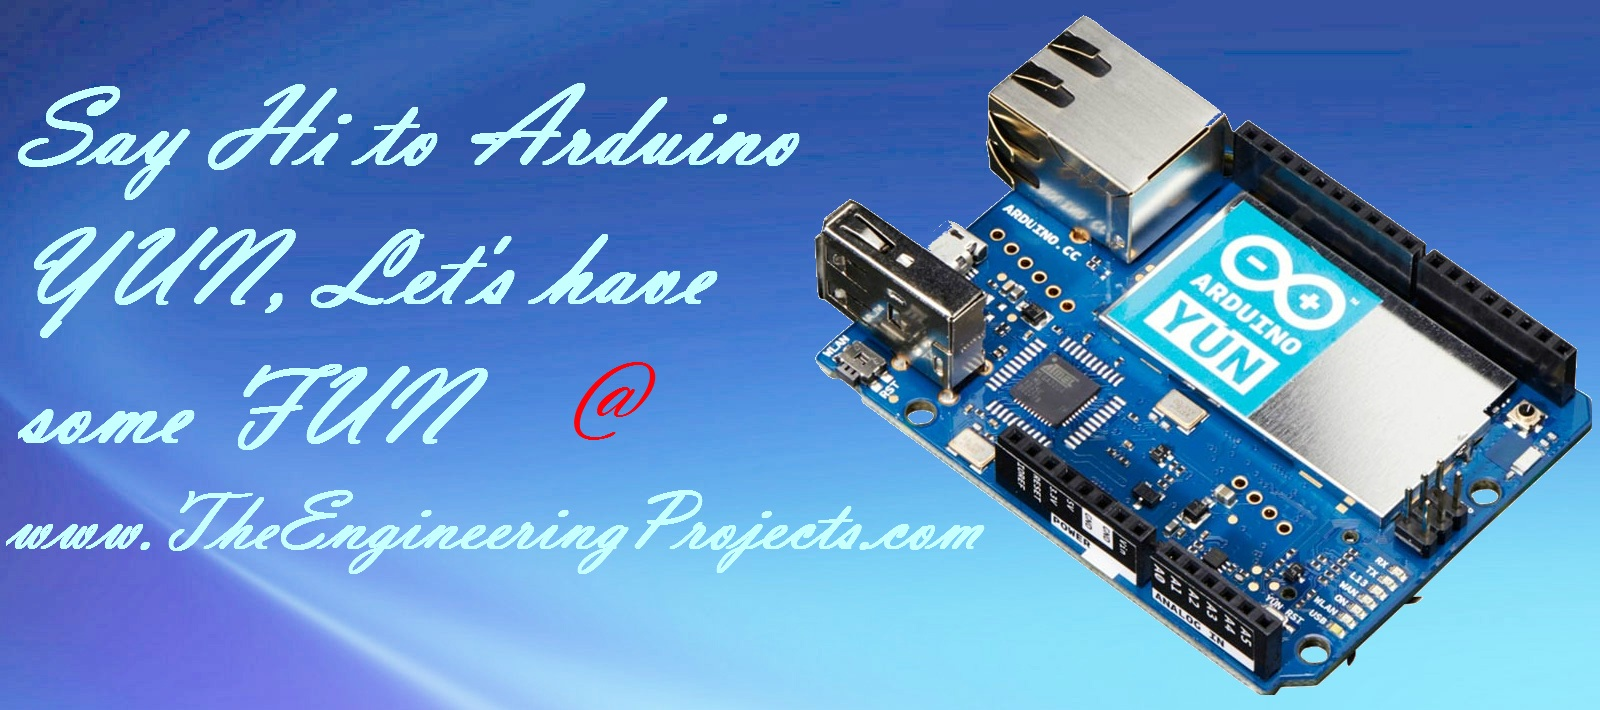 Getting started with arduino yun,manually connect arduino yun with wifi,connect yun with wifi